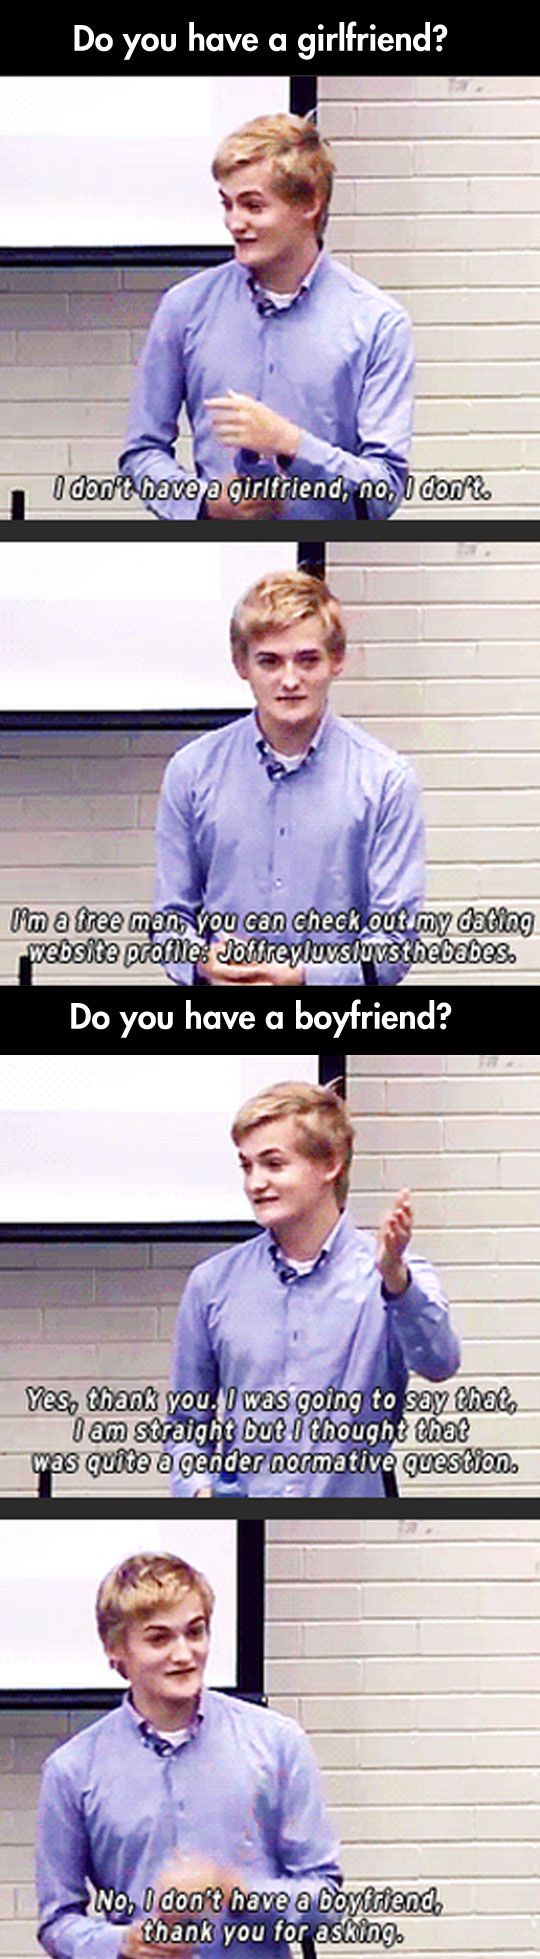 Round of applause for Jack Gleeson, folks!